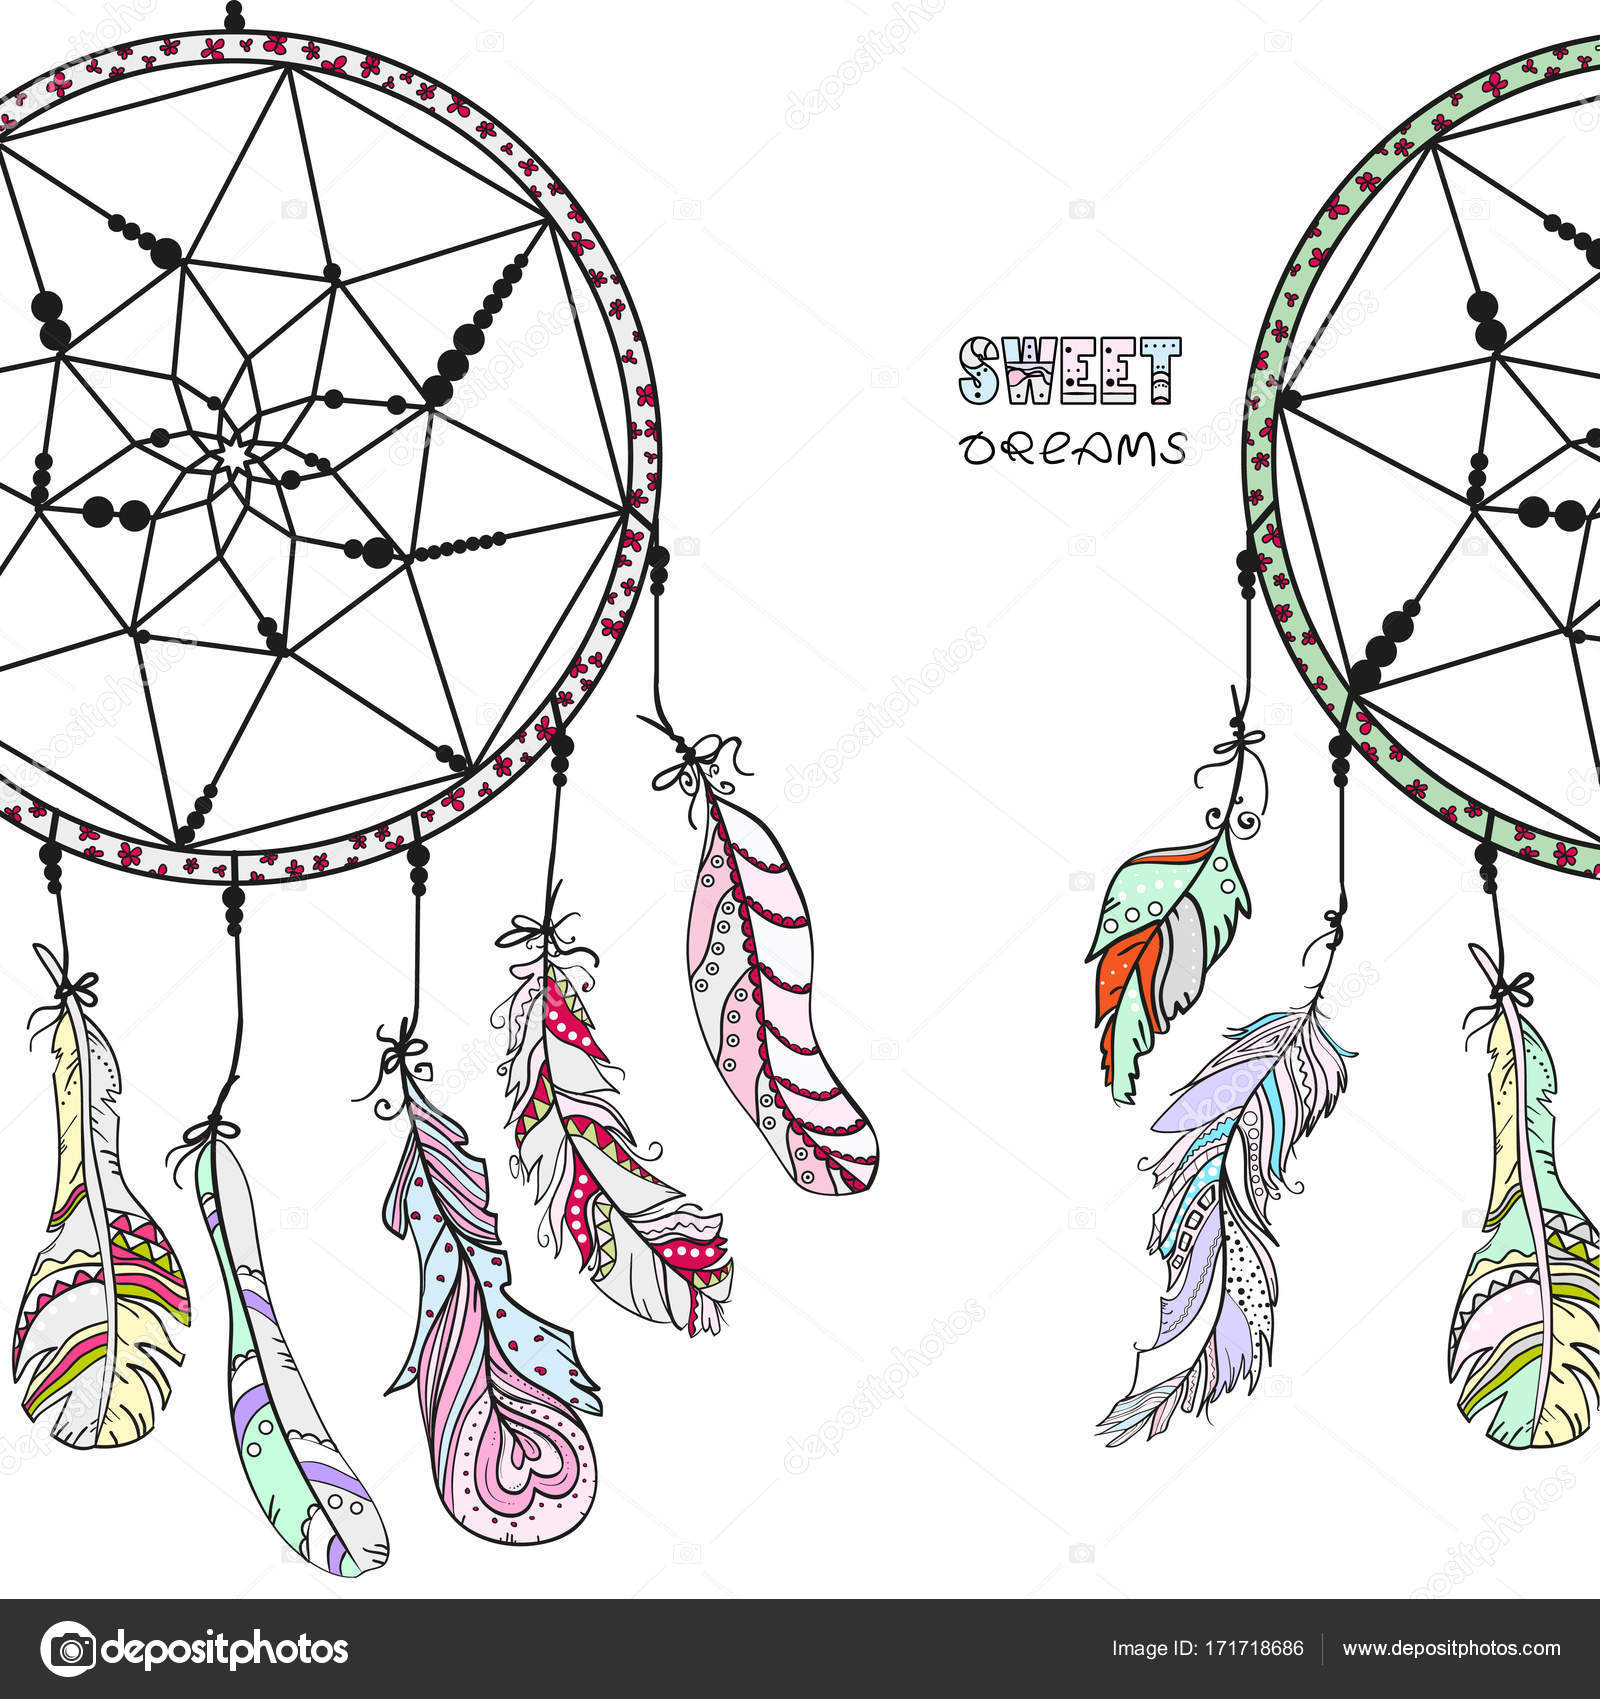 Dreamcatcher Tattoo Art Stockfoto C Mikabesfamilnaya 171718686